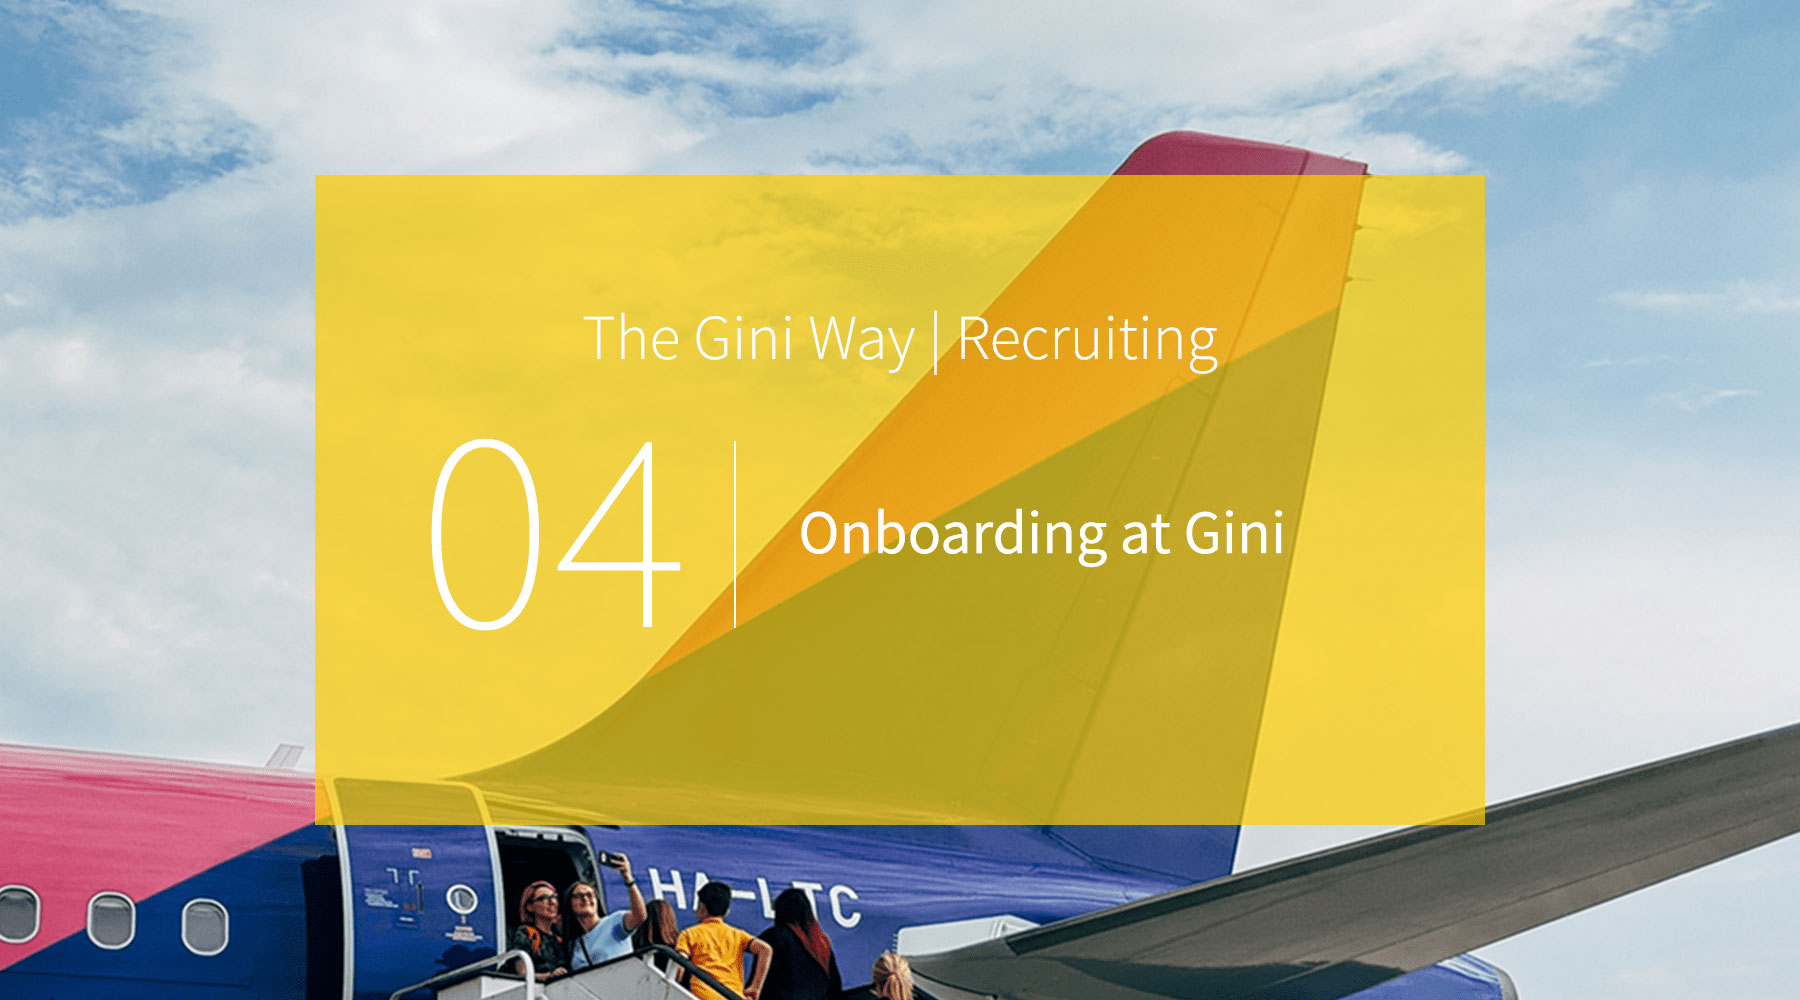 Onboarding at Gini